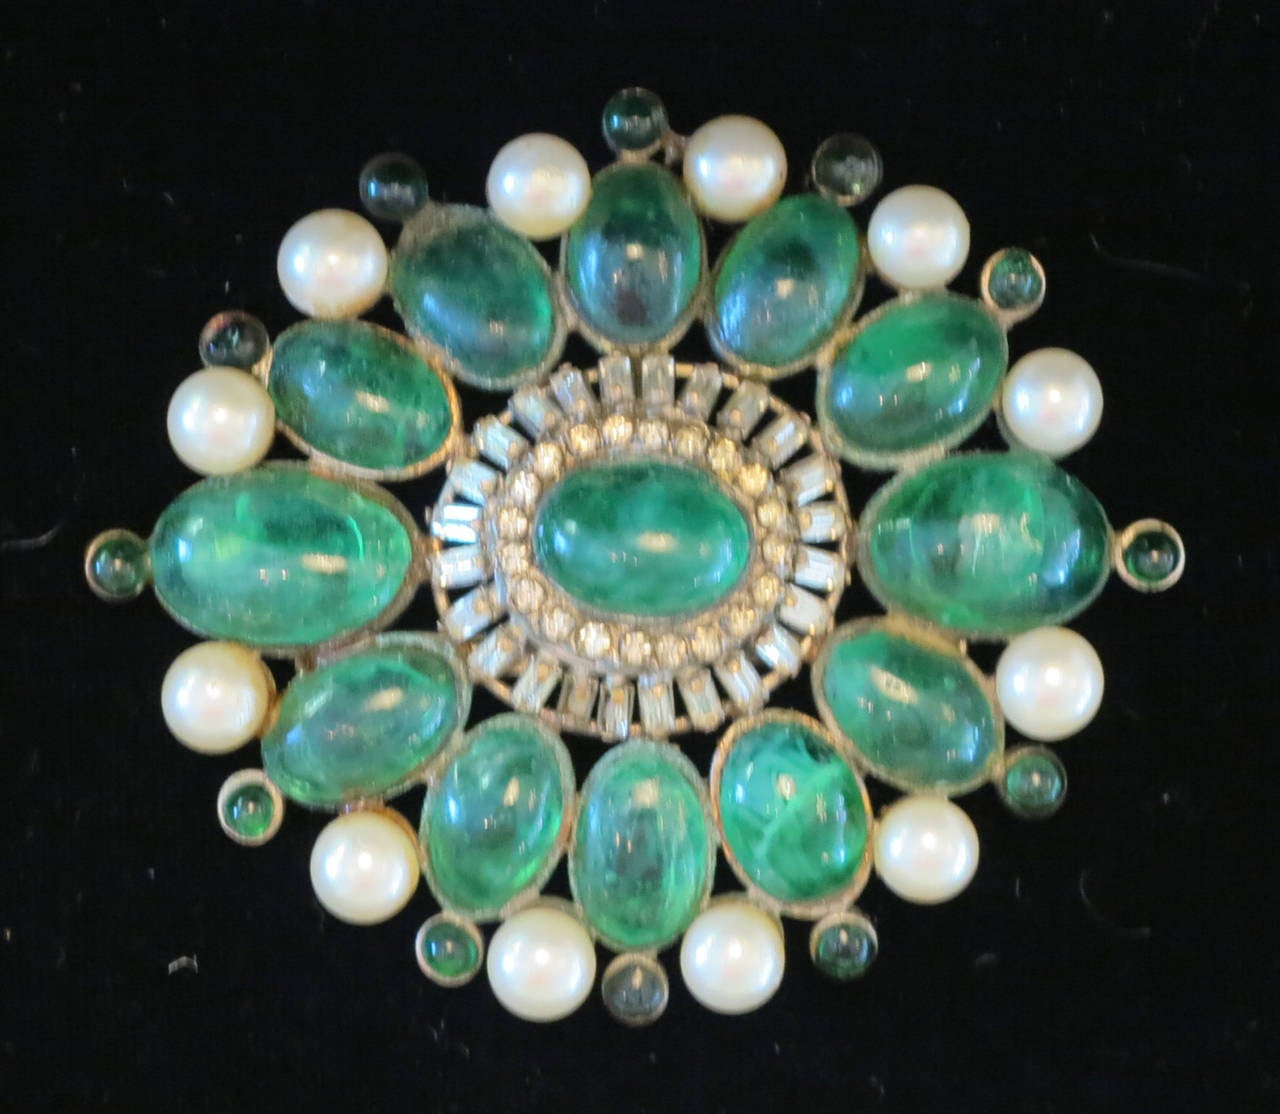 Chanel rare early signed large Gripoix emerald brooch 1950s 10